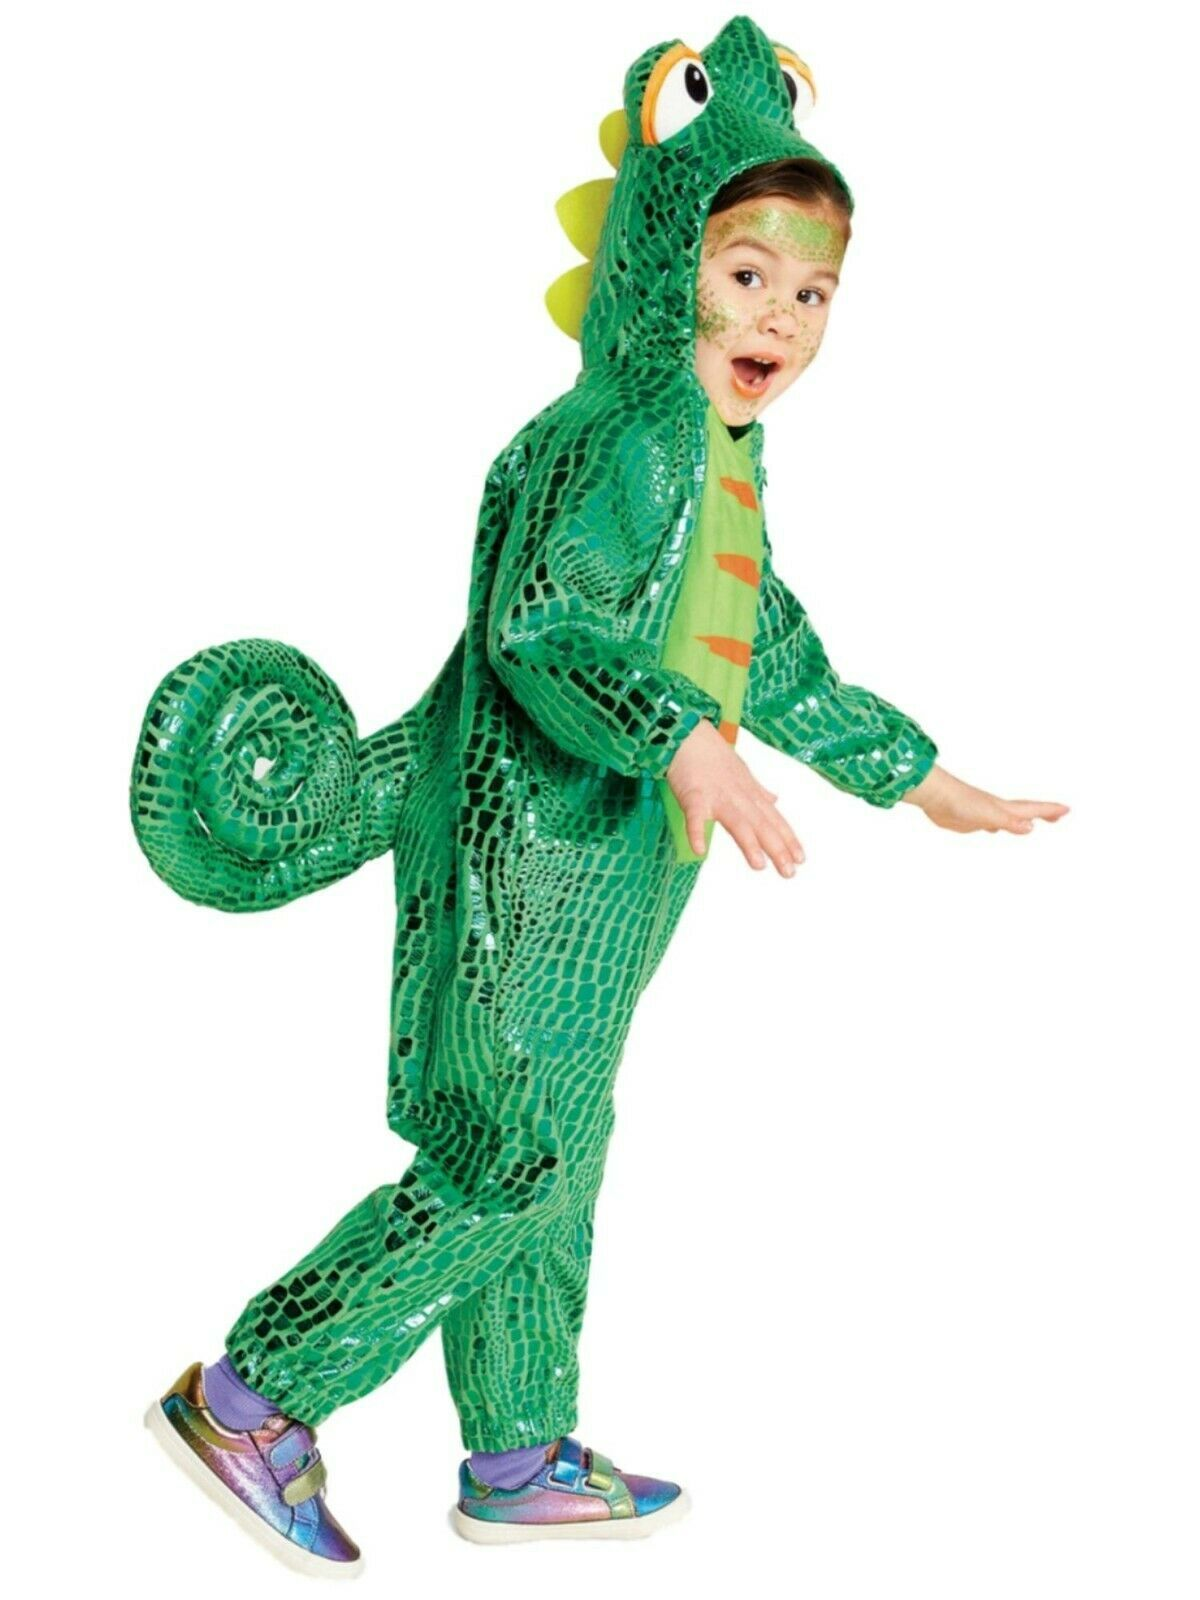 Primary image for Shiny Green Plush Chameleon Hooded Halloween Costume 4T-5T Hyde & Eek! Boutique